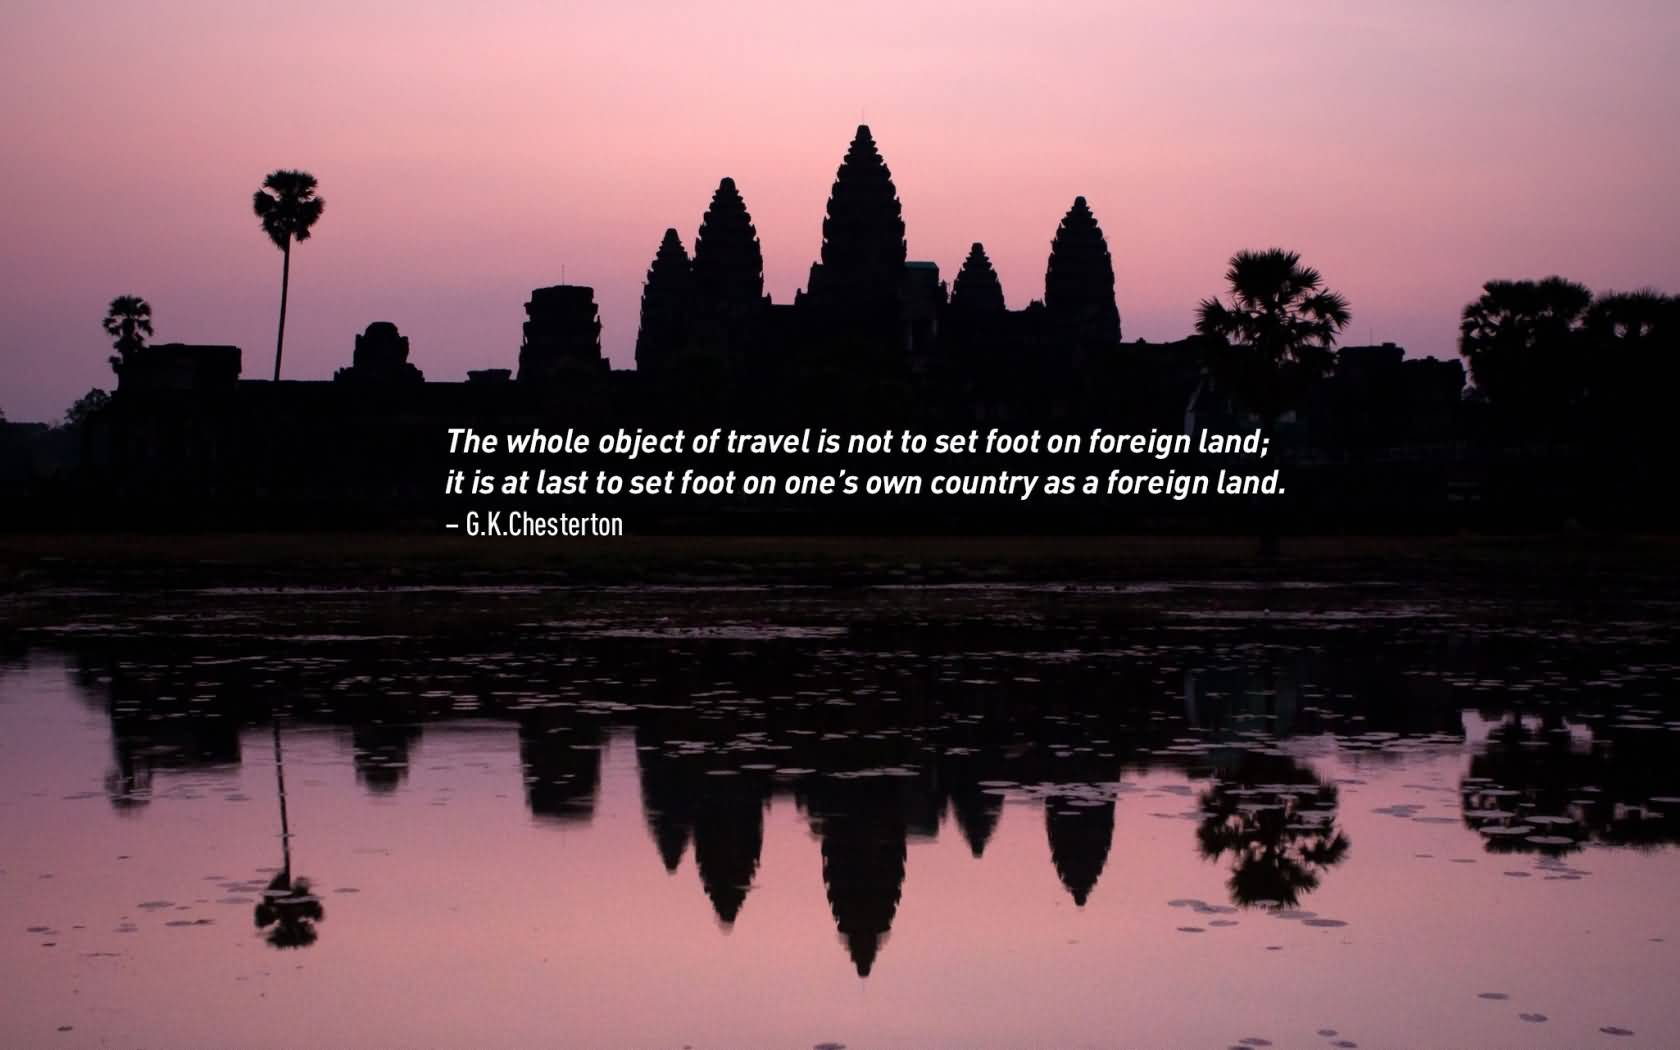 Travel Quotes the whole object of travel is not to set foot on foreign land.